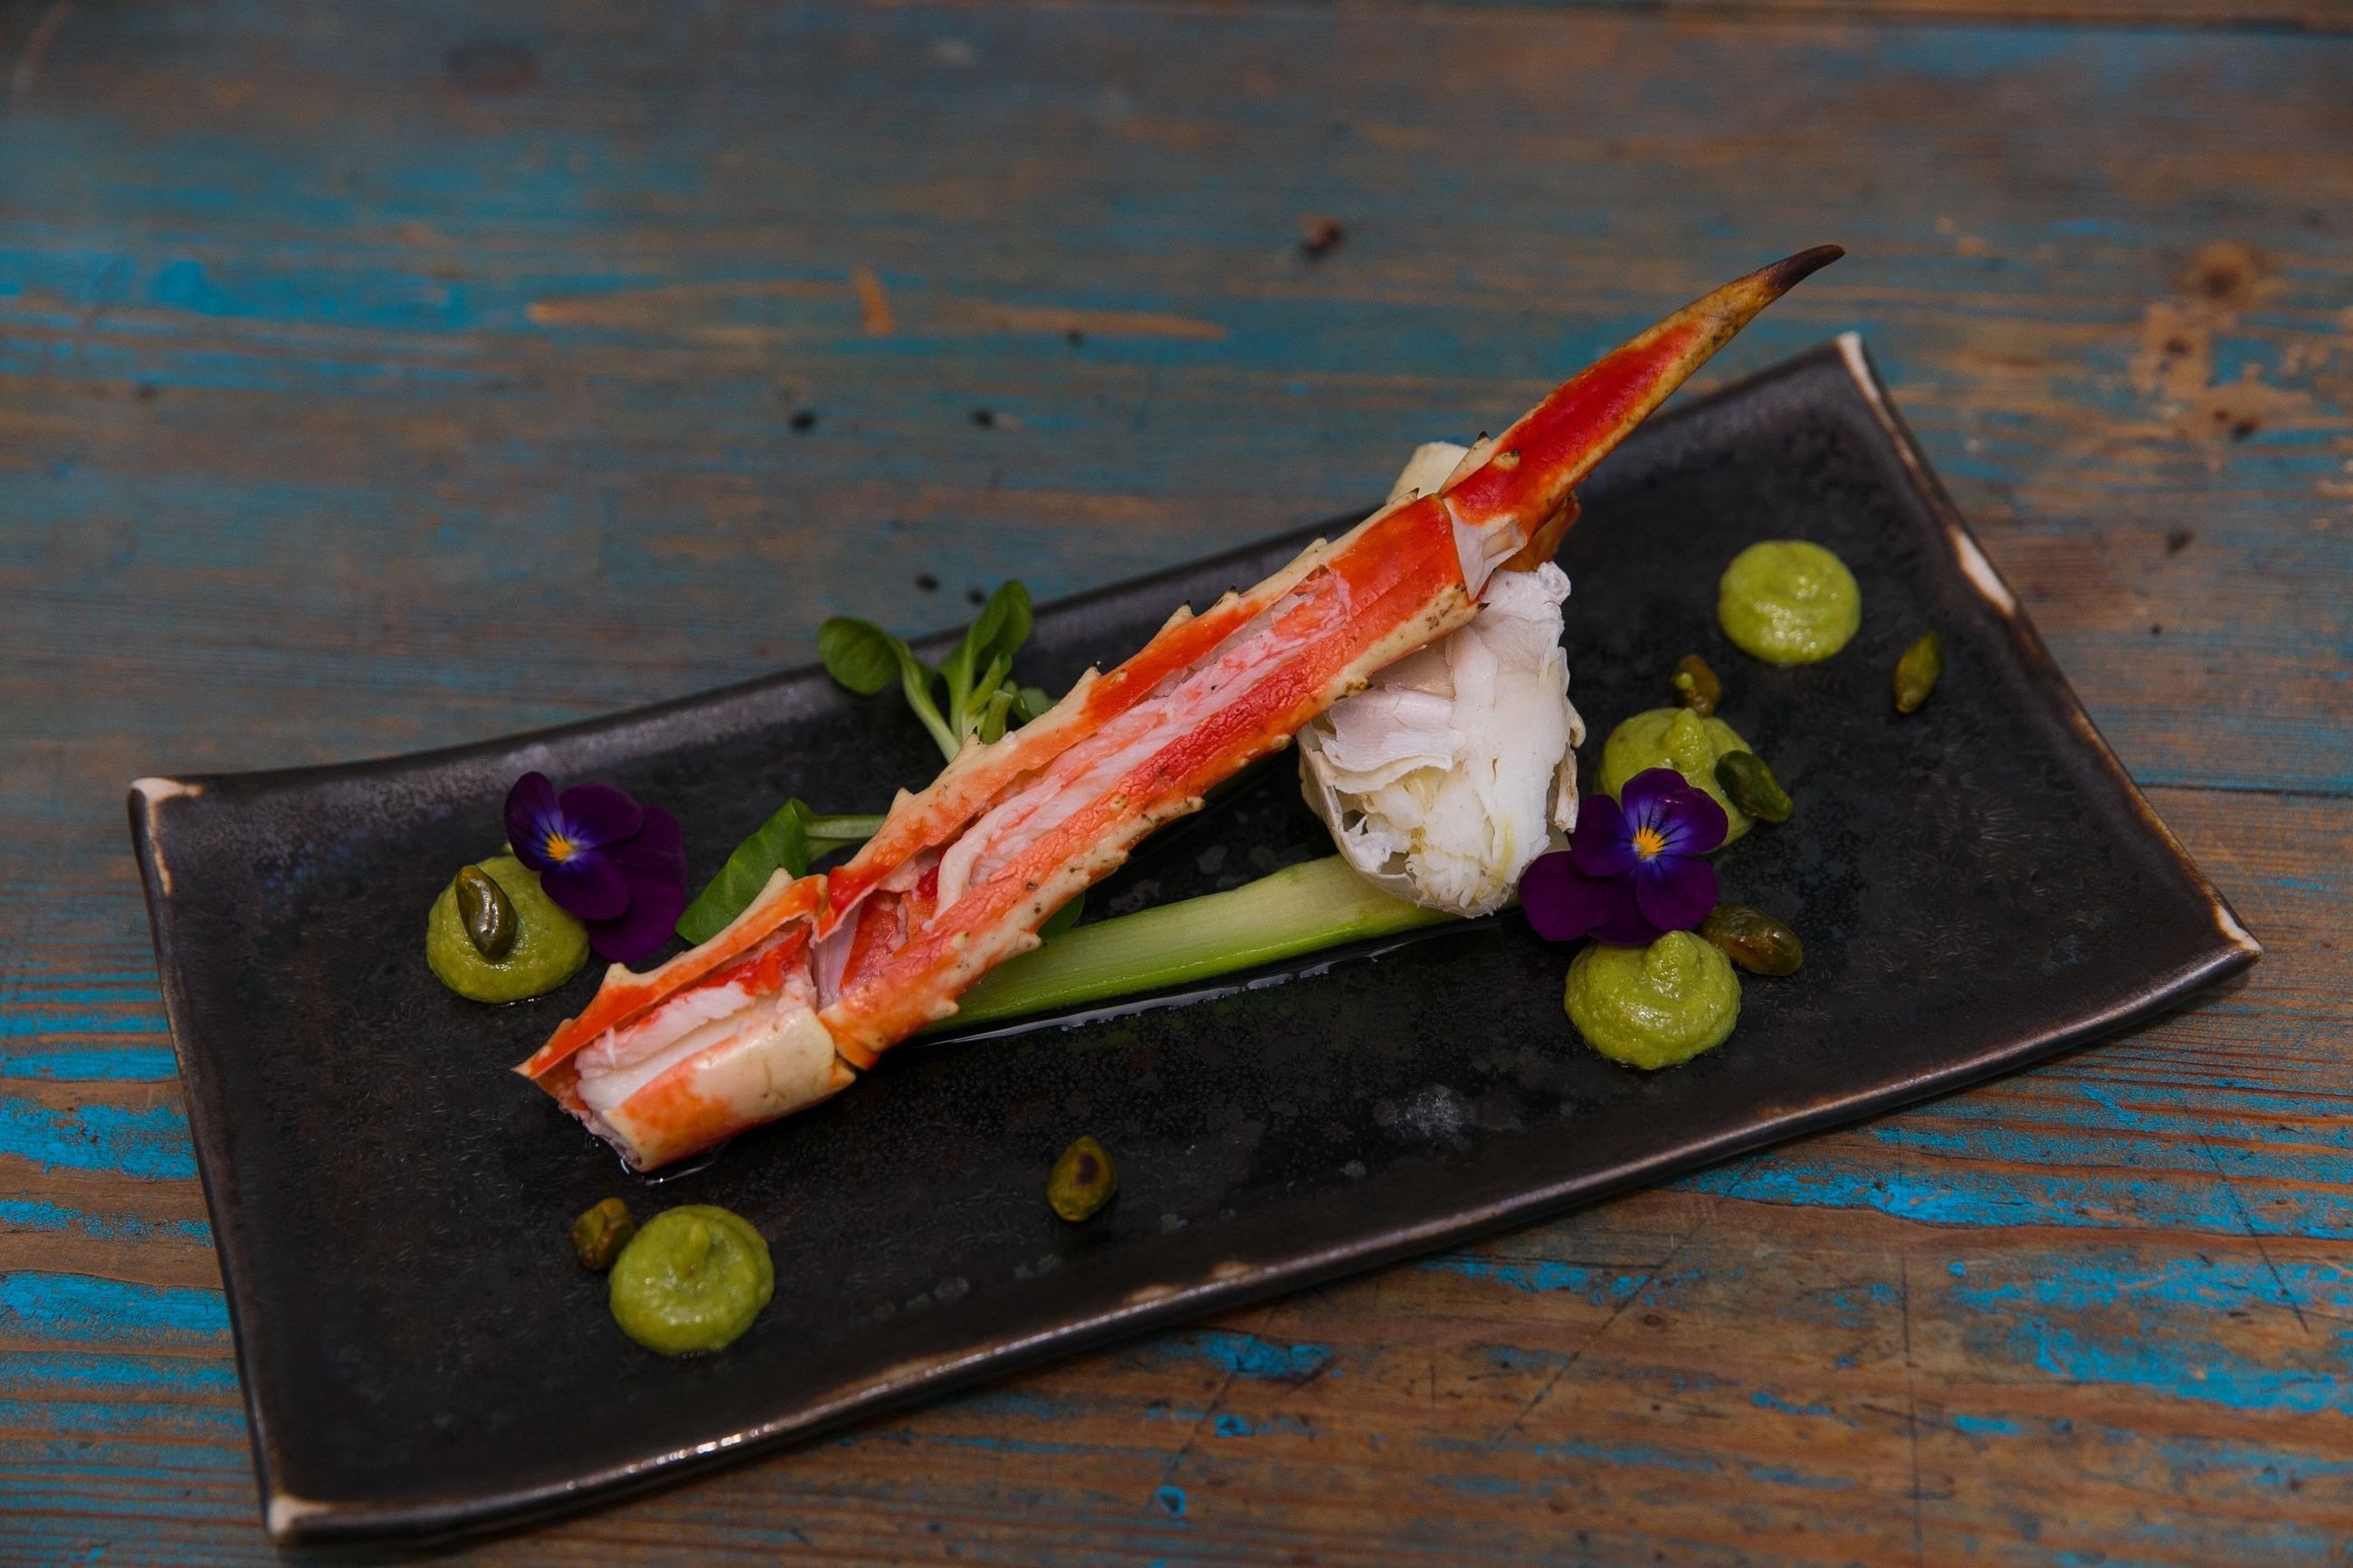 food, food and drink, healthy eating, freshness, wellbeing, seafood, vegetable, wood - material, table, no people, ready-to-eat, still life, indoors, close-up, plate, slice, serving size, high angle view, fruit, crustacean, tray, chopped, japanese food